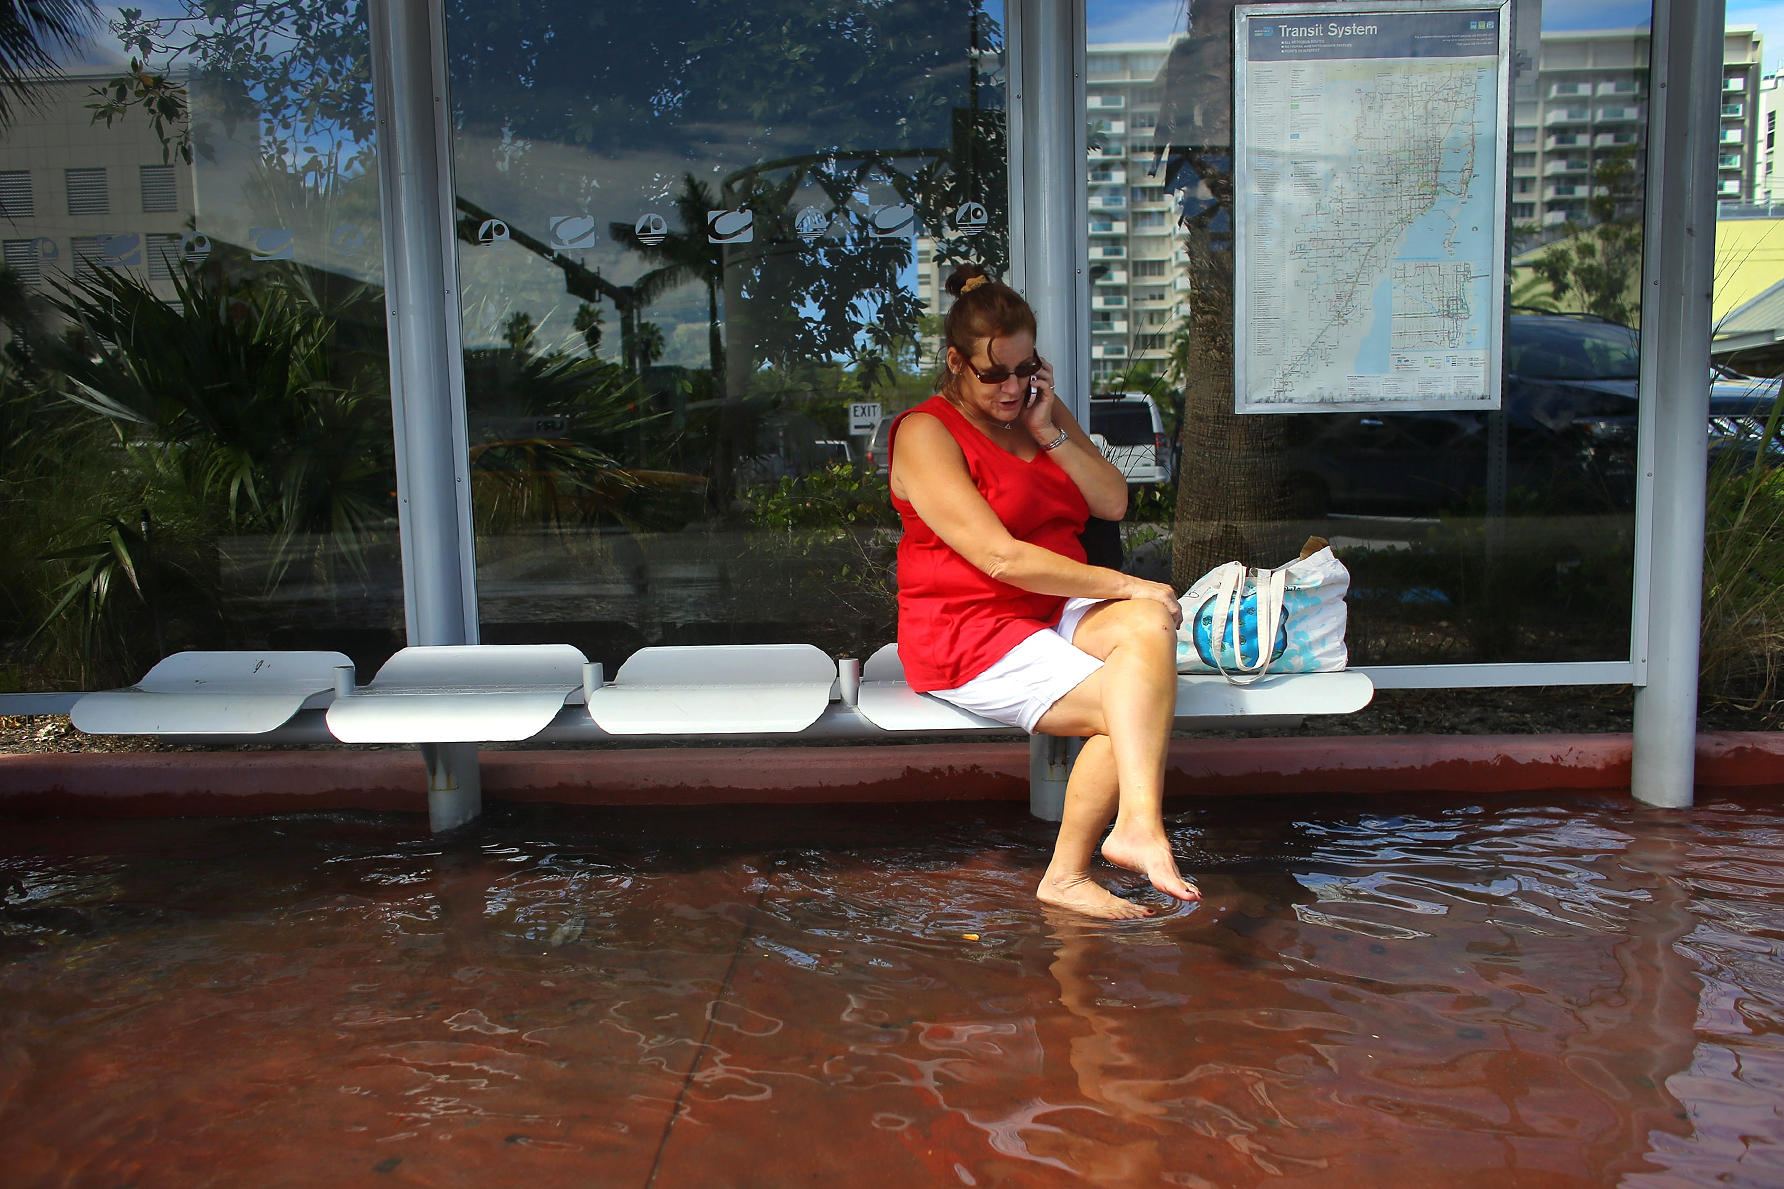 Cindy Minnix Waits For A Bus In A Flooded Street On Oct 18 2012 In Miami Beach A Changing Climate Is Making Floods Related To High Tides More Frequent